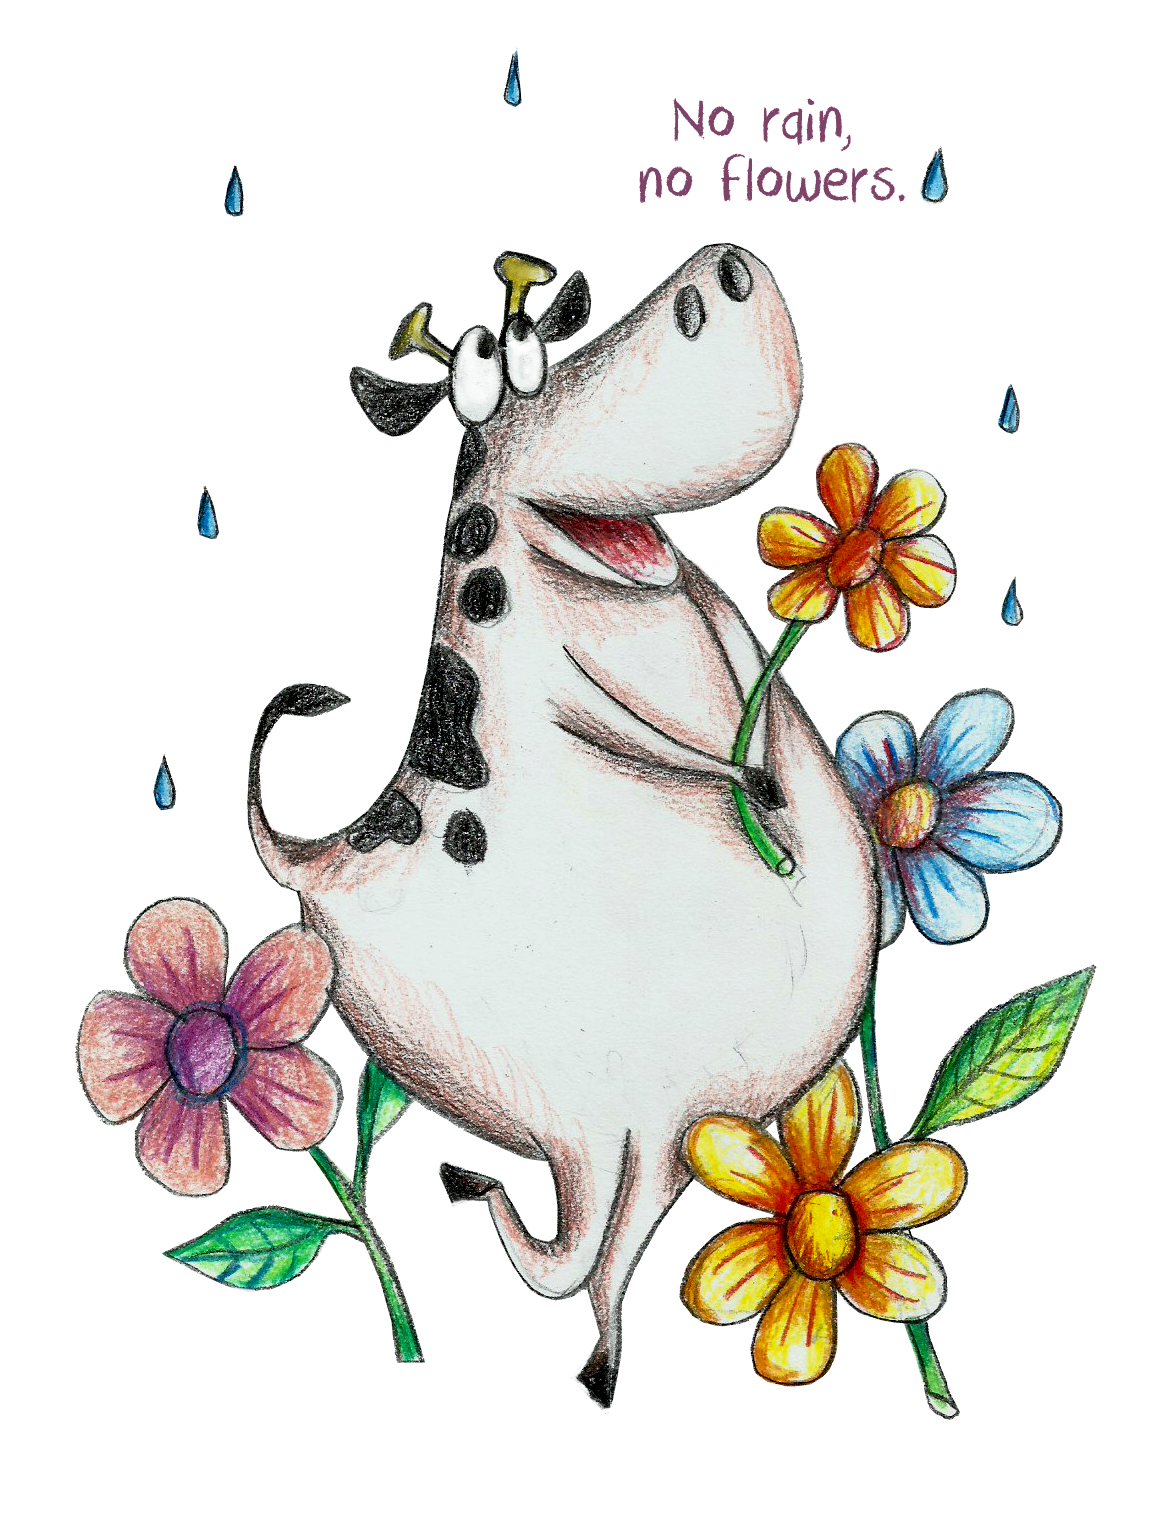 Drawing cow flower. No rain flowers a